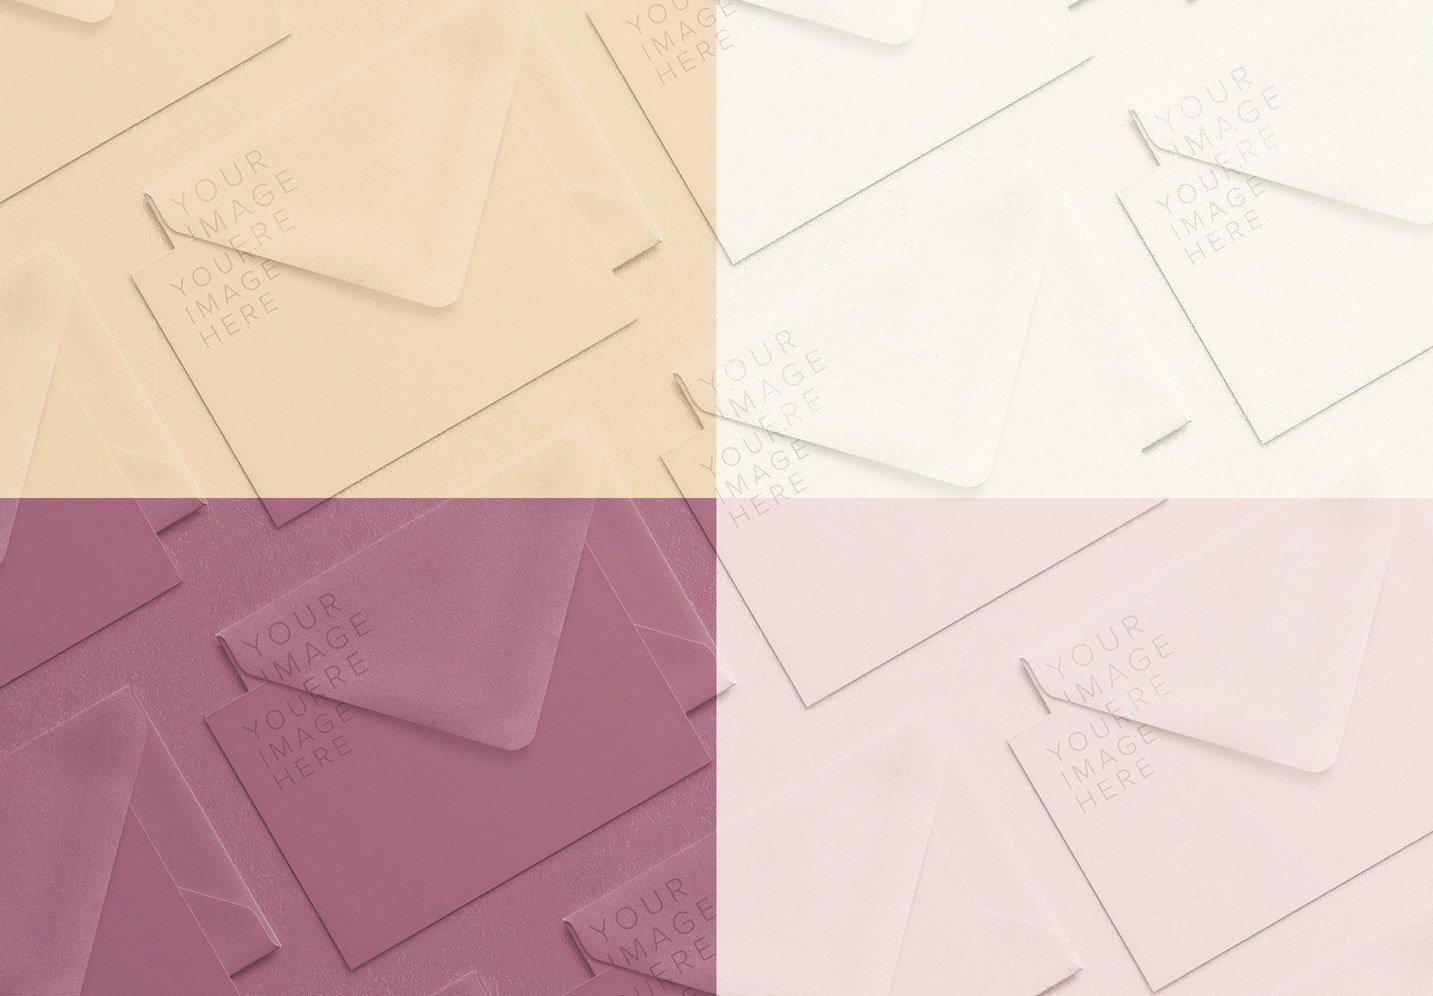 cards and envelope diagonal layout mockup 2 image02